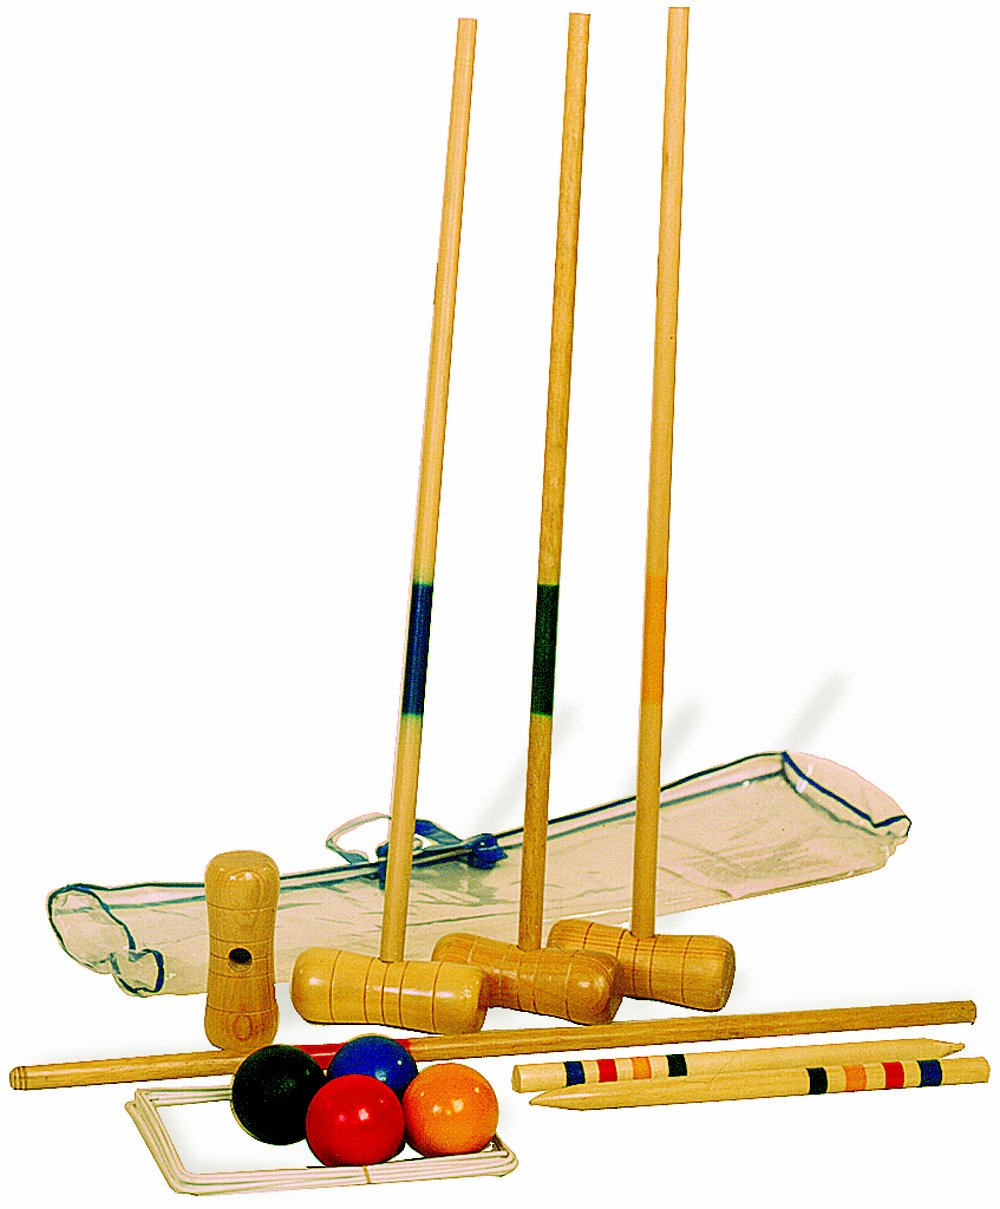 Small Foot Company 1050 Croquet Set by Legler